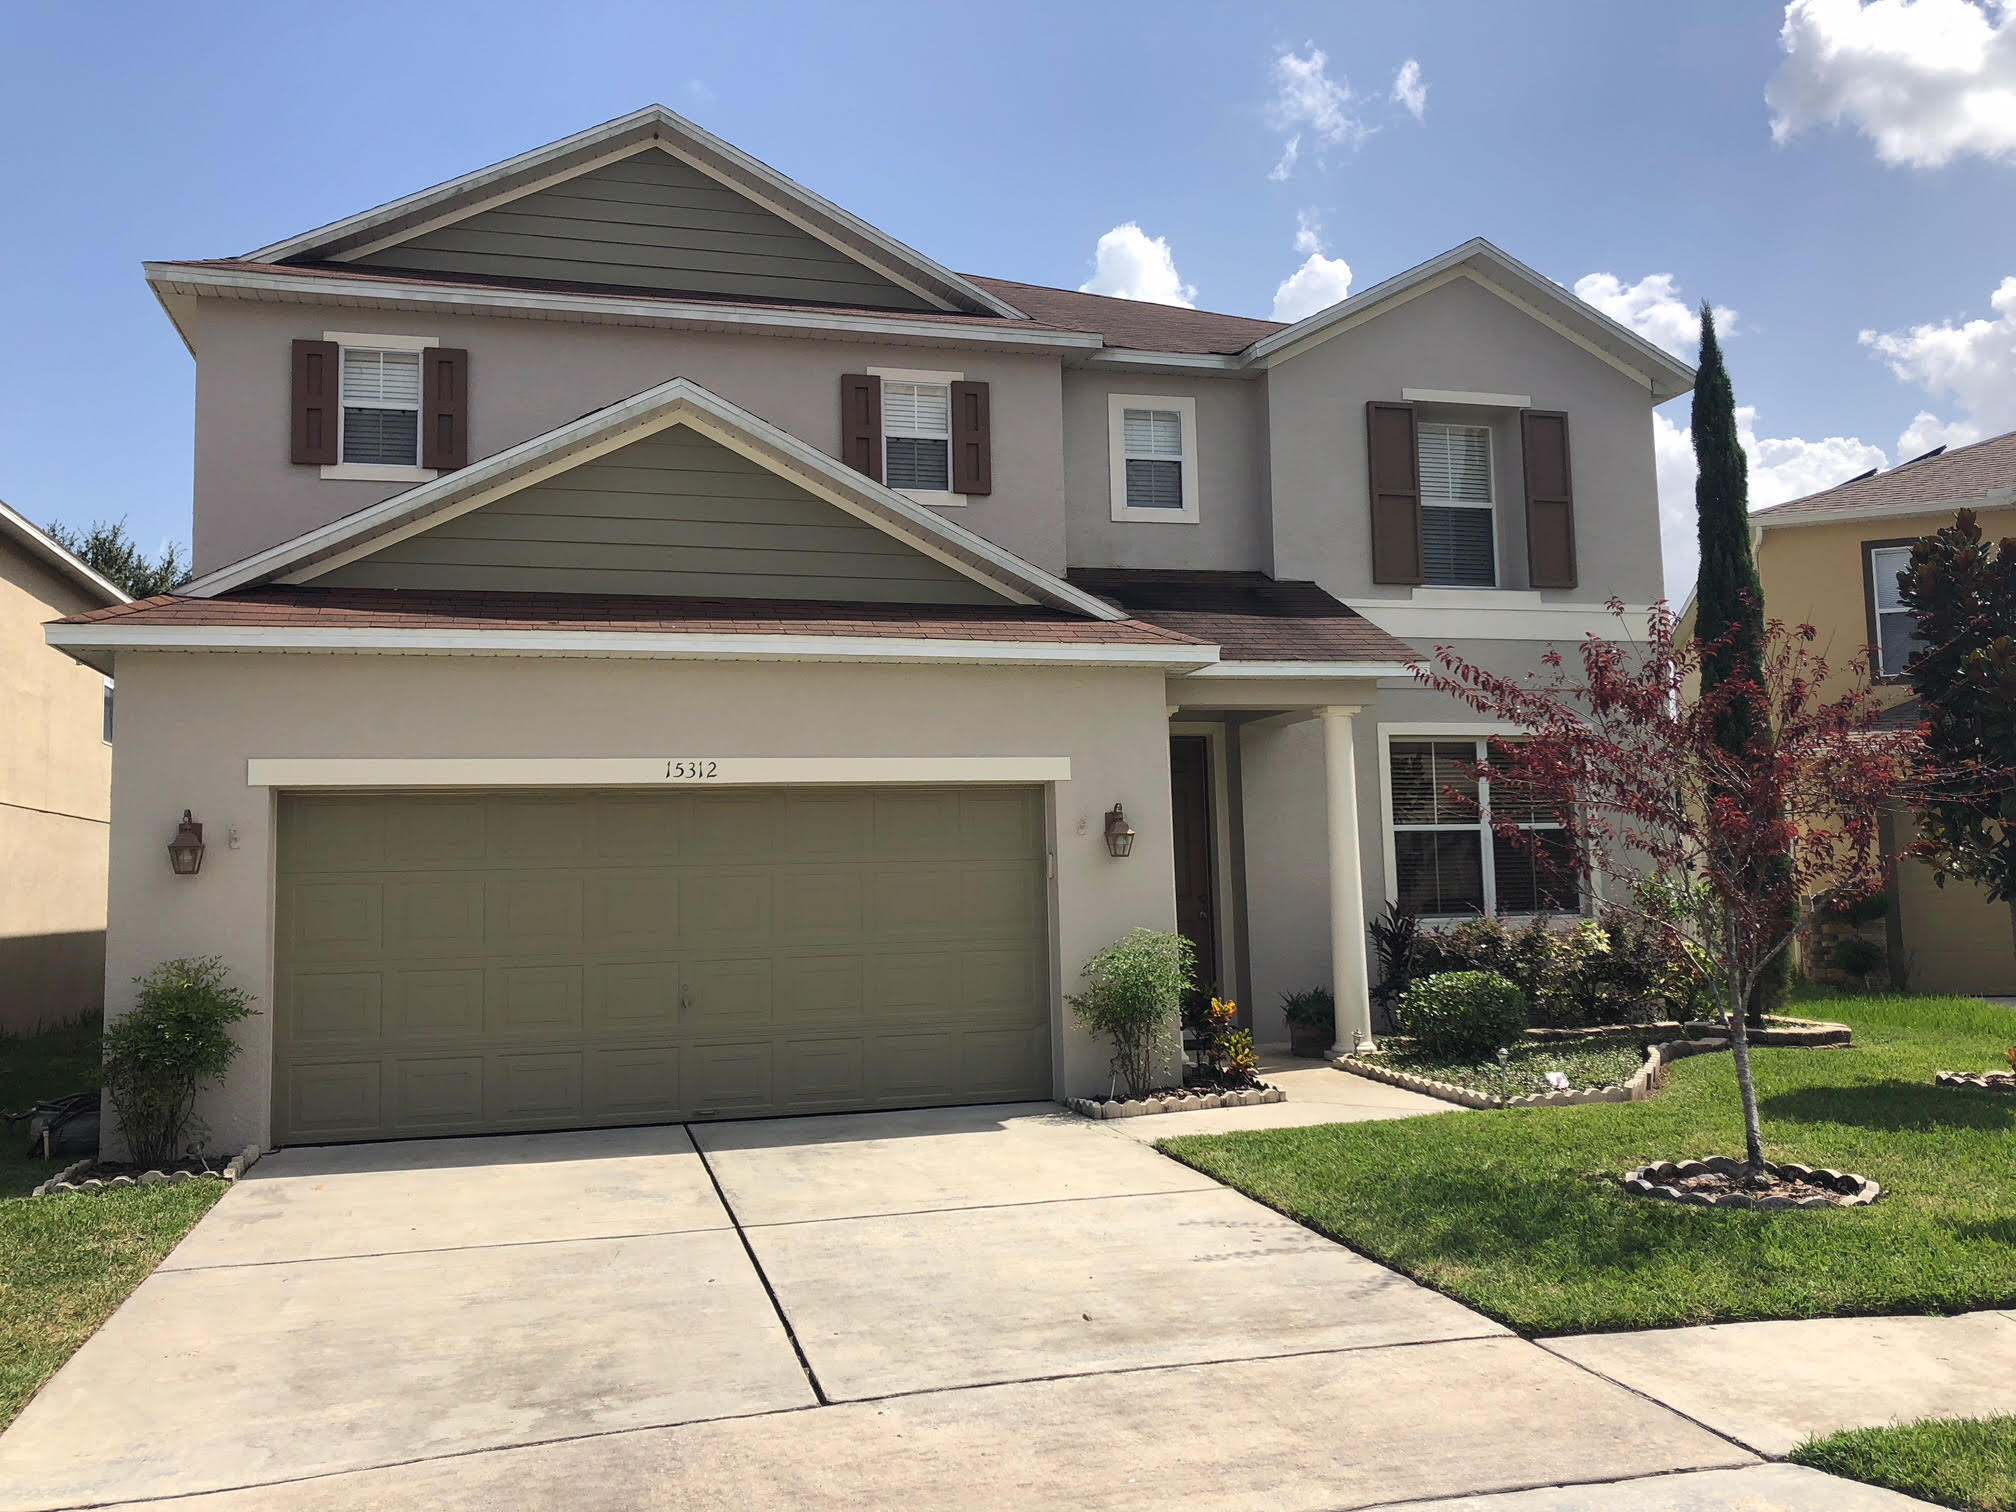 Discover sophisticated living in this beautiful home situated on a serene cul-de-sac in the Waterford Trails community. Only minutes from WATERFORD LAKES. Located within Avalon Park, offering seasonal events, mom-and-pop restaurants/eateries, trendy boutique shopping, movie nights in the park & more!